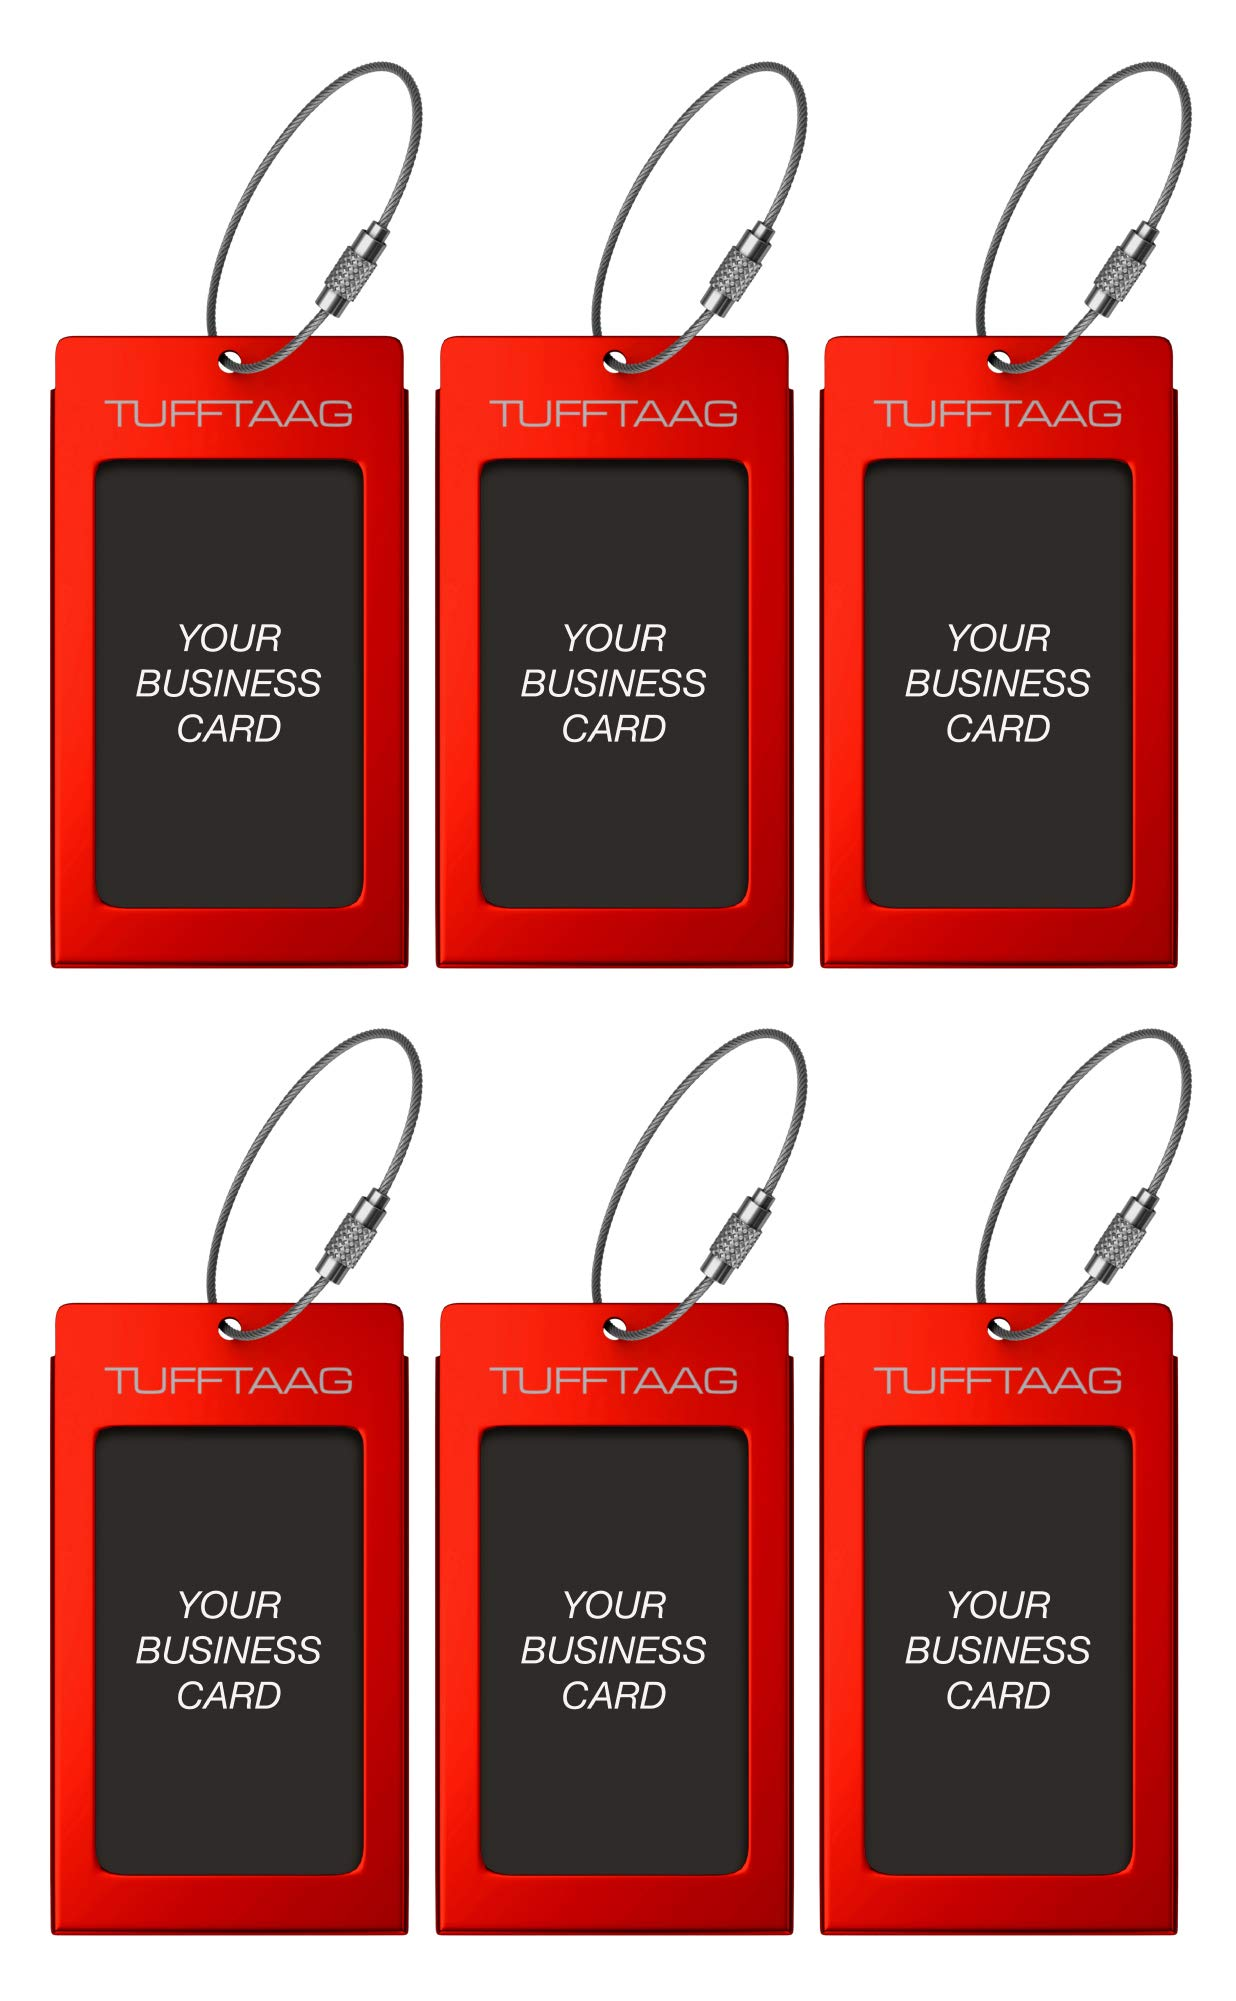 Luggage Tags TUFFTAAG for Business Cards, Metal Suitcase Labels, 6 Pack Bundle (6 Red)